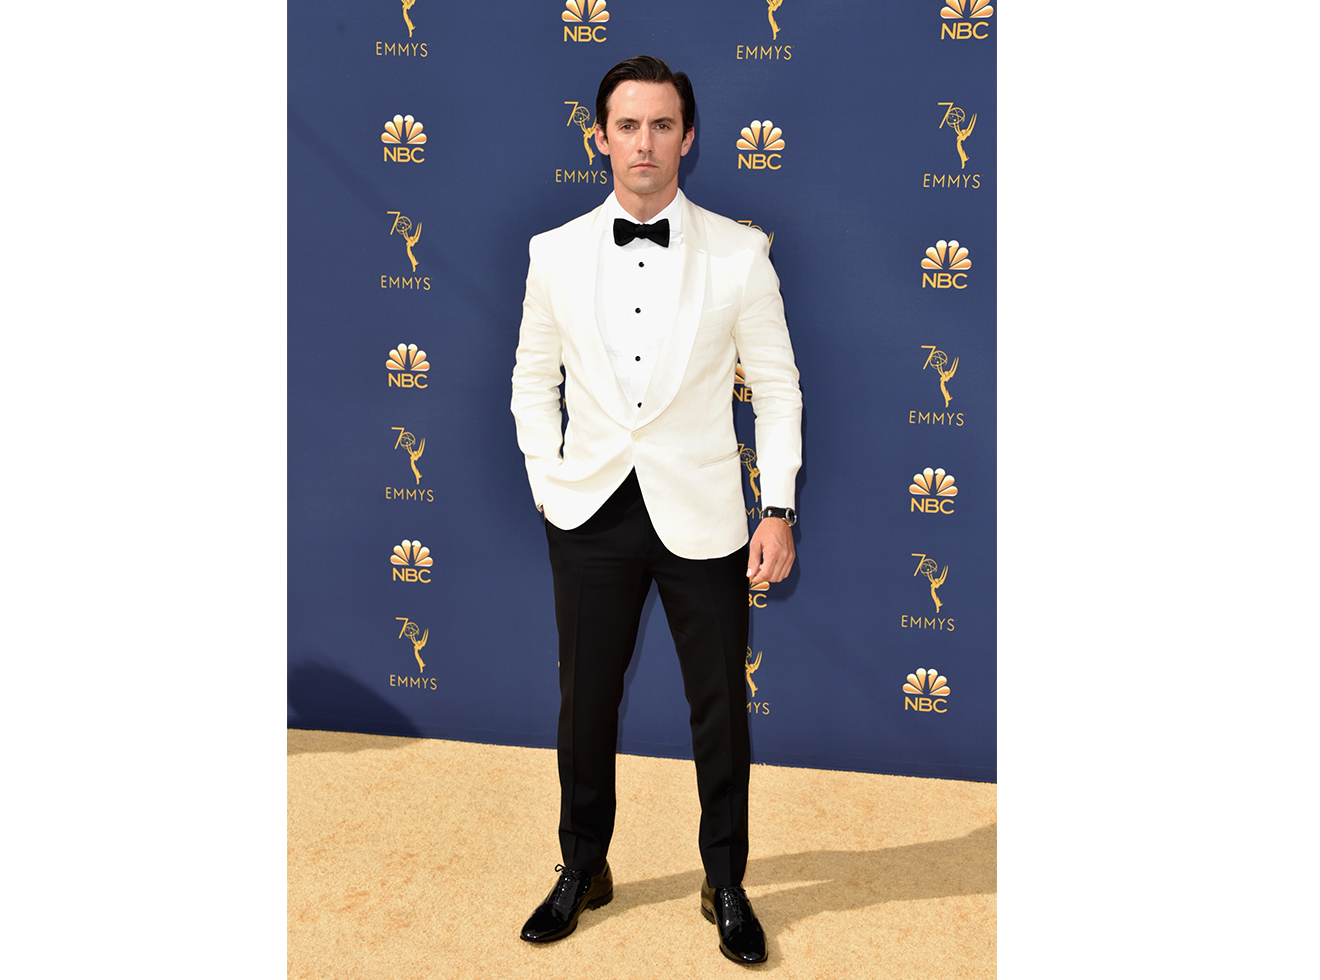 Milo Ventimiglia attends the 70th Emmy Awards at Microsoft Theater on September 17, 2018 in Los Angeles, California.